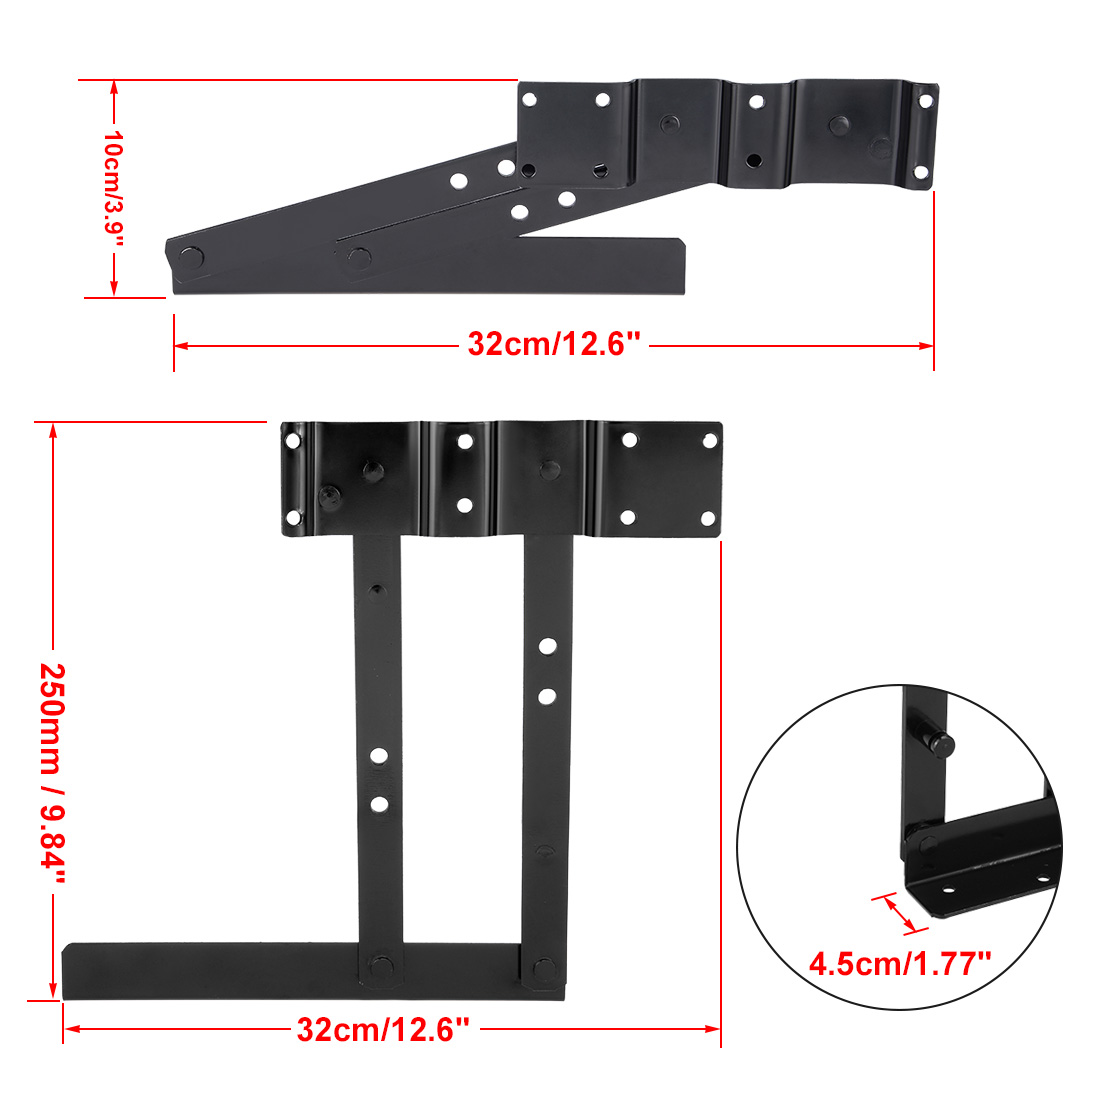 "Lift up Top Coffee Tea Table Desk Furniture Mechanism Bracket 1 Pair, 250mm/9.8"" - image 2 of 5"